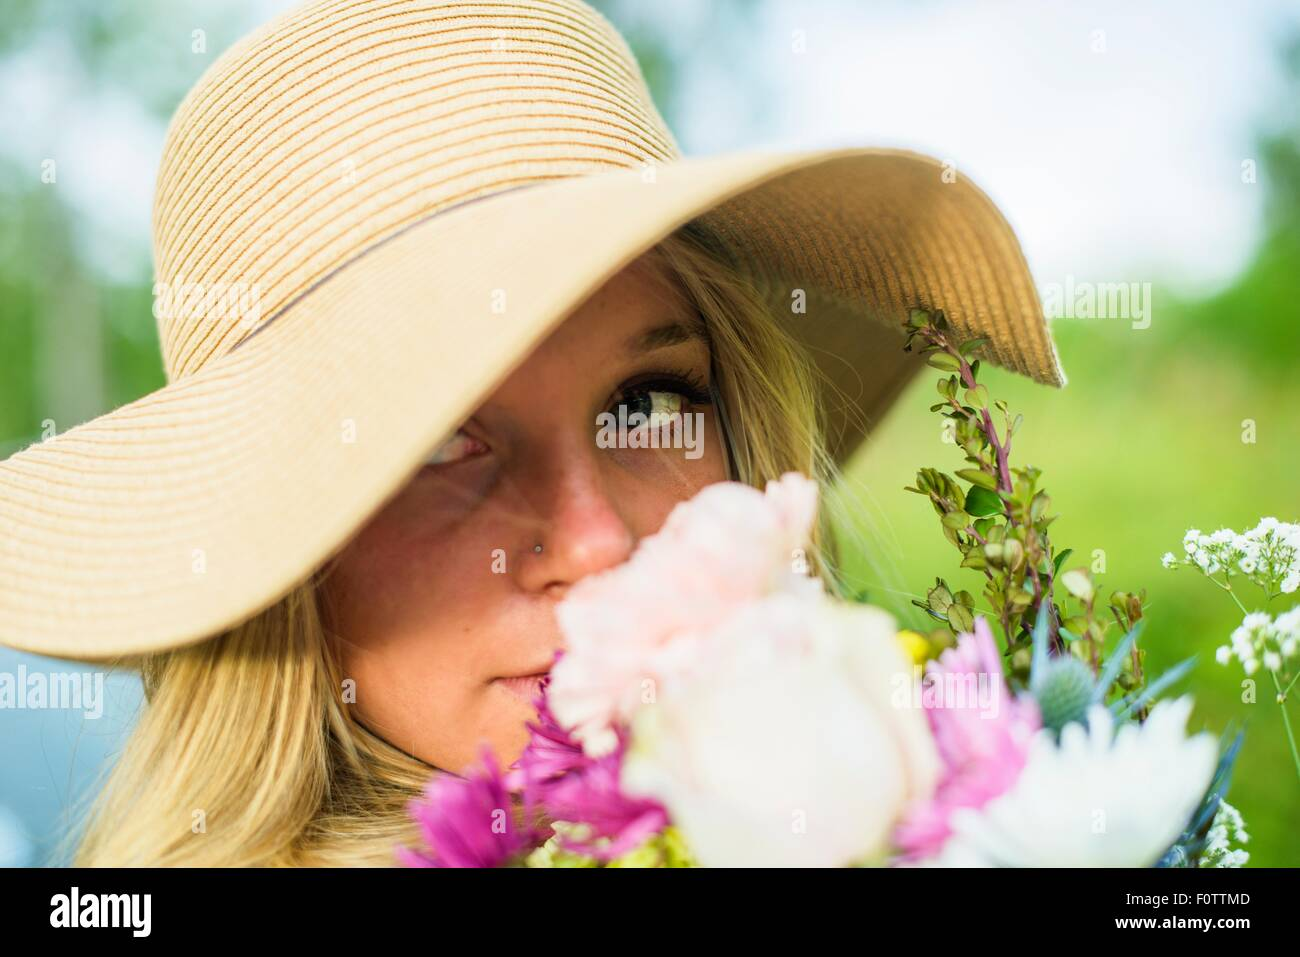 Close up portrait of young woman with bunch of flowers and wearing straw hat - Stock Image